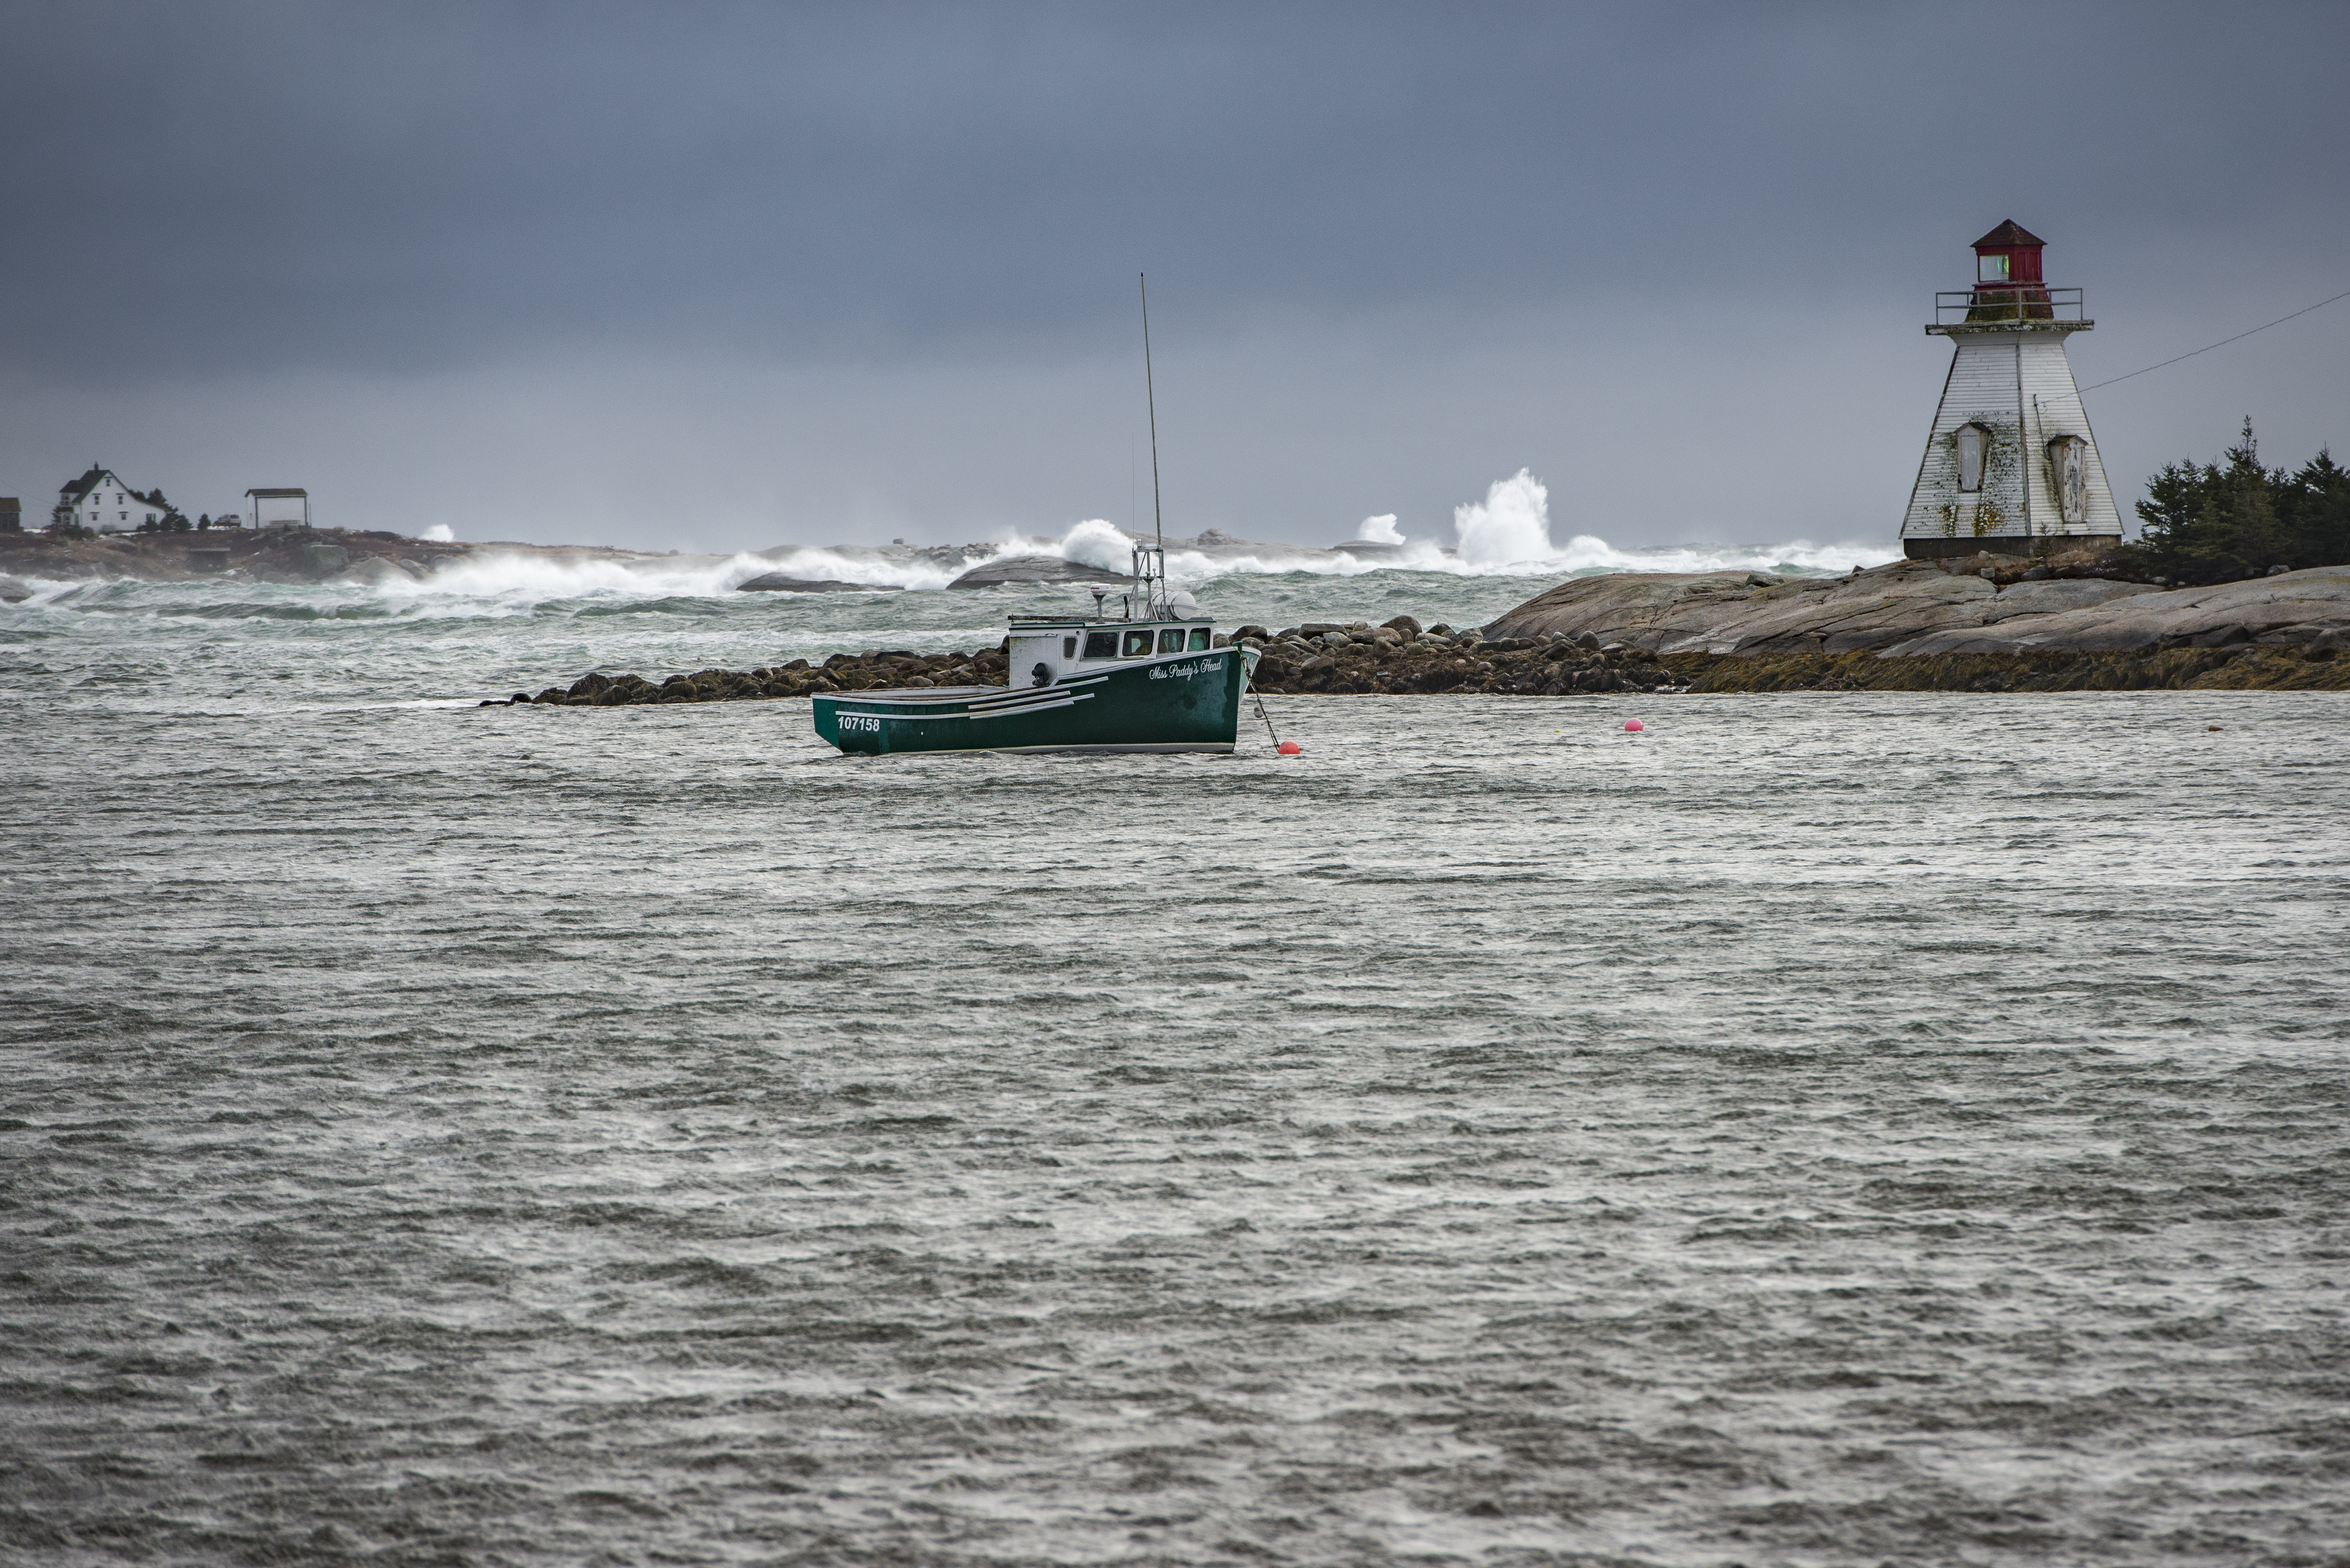 teal boat on body of water near lighthouse